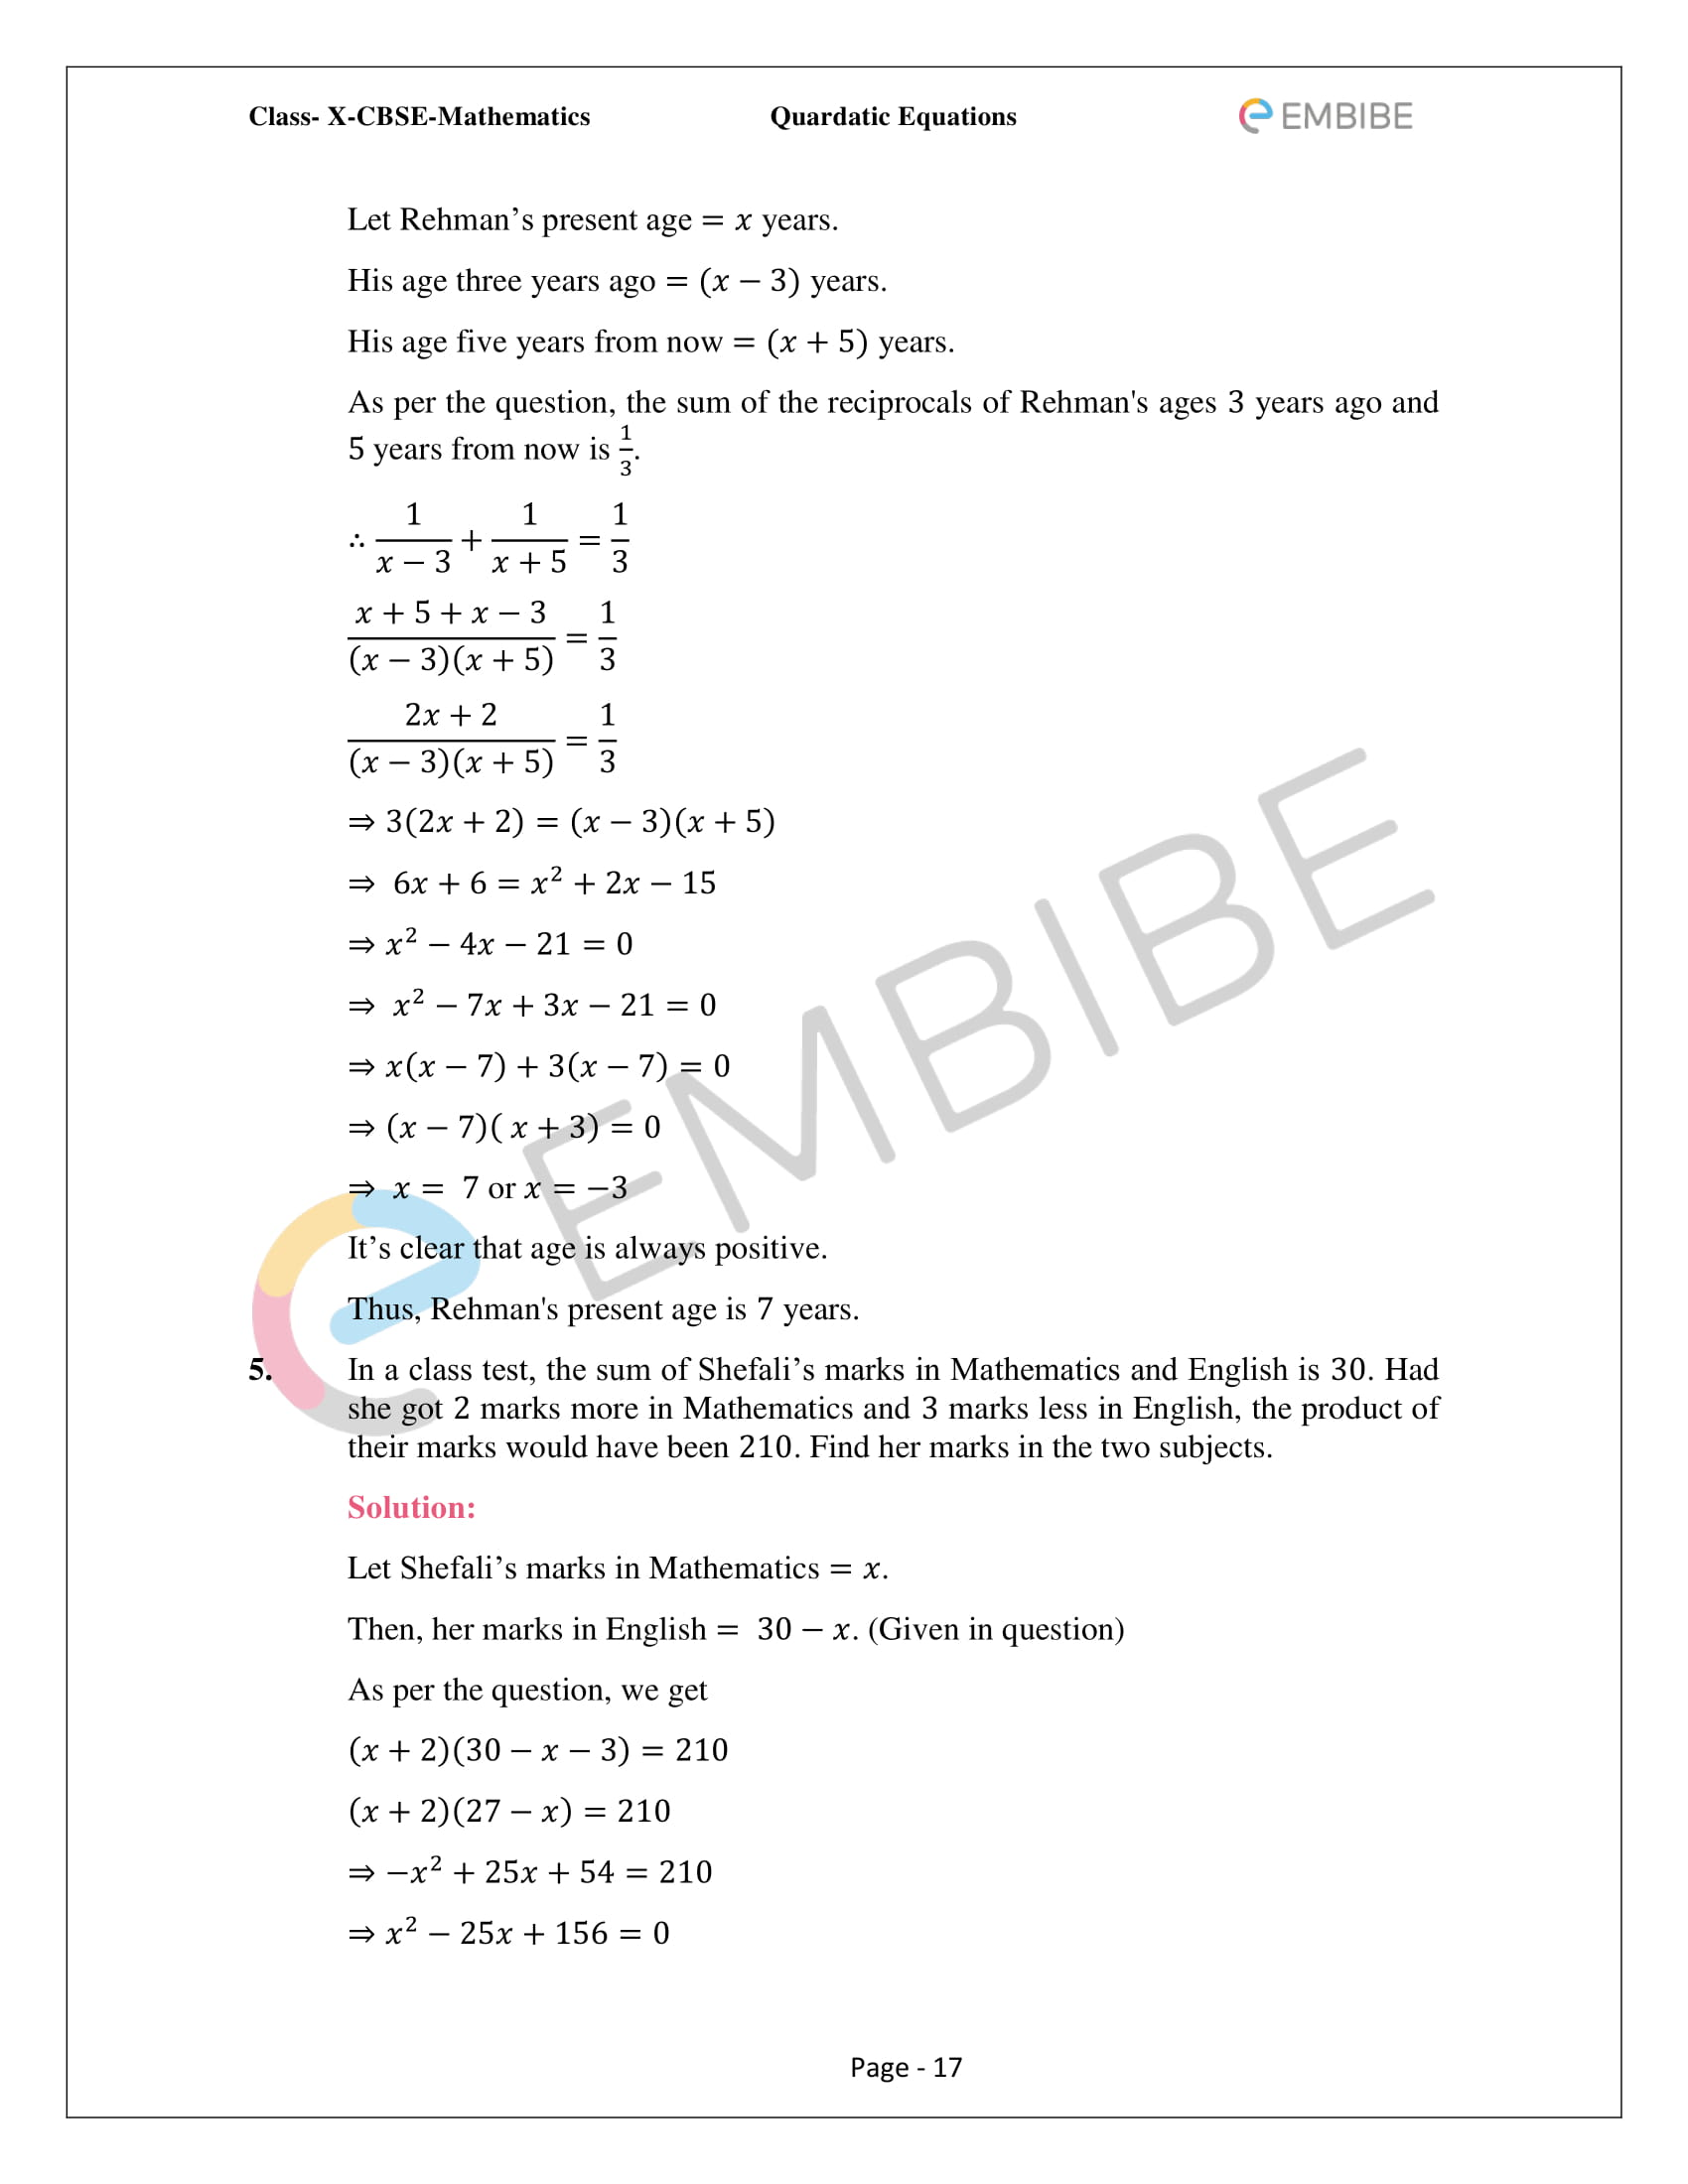 CBSE NCERT Solutions For Class 10 Maths Chapter 4 – Quadratic Equations - 17